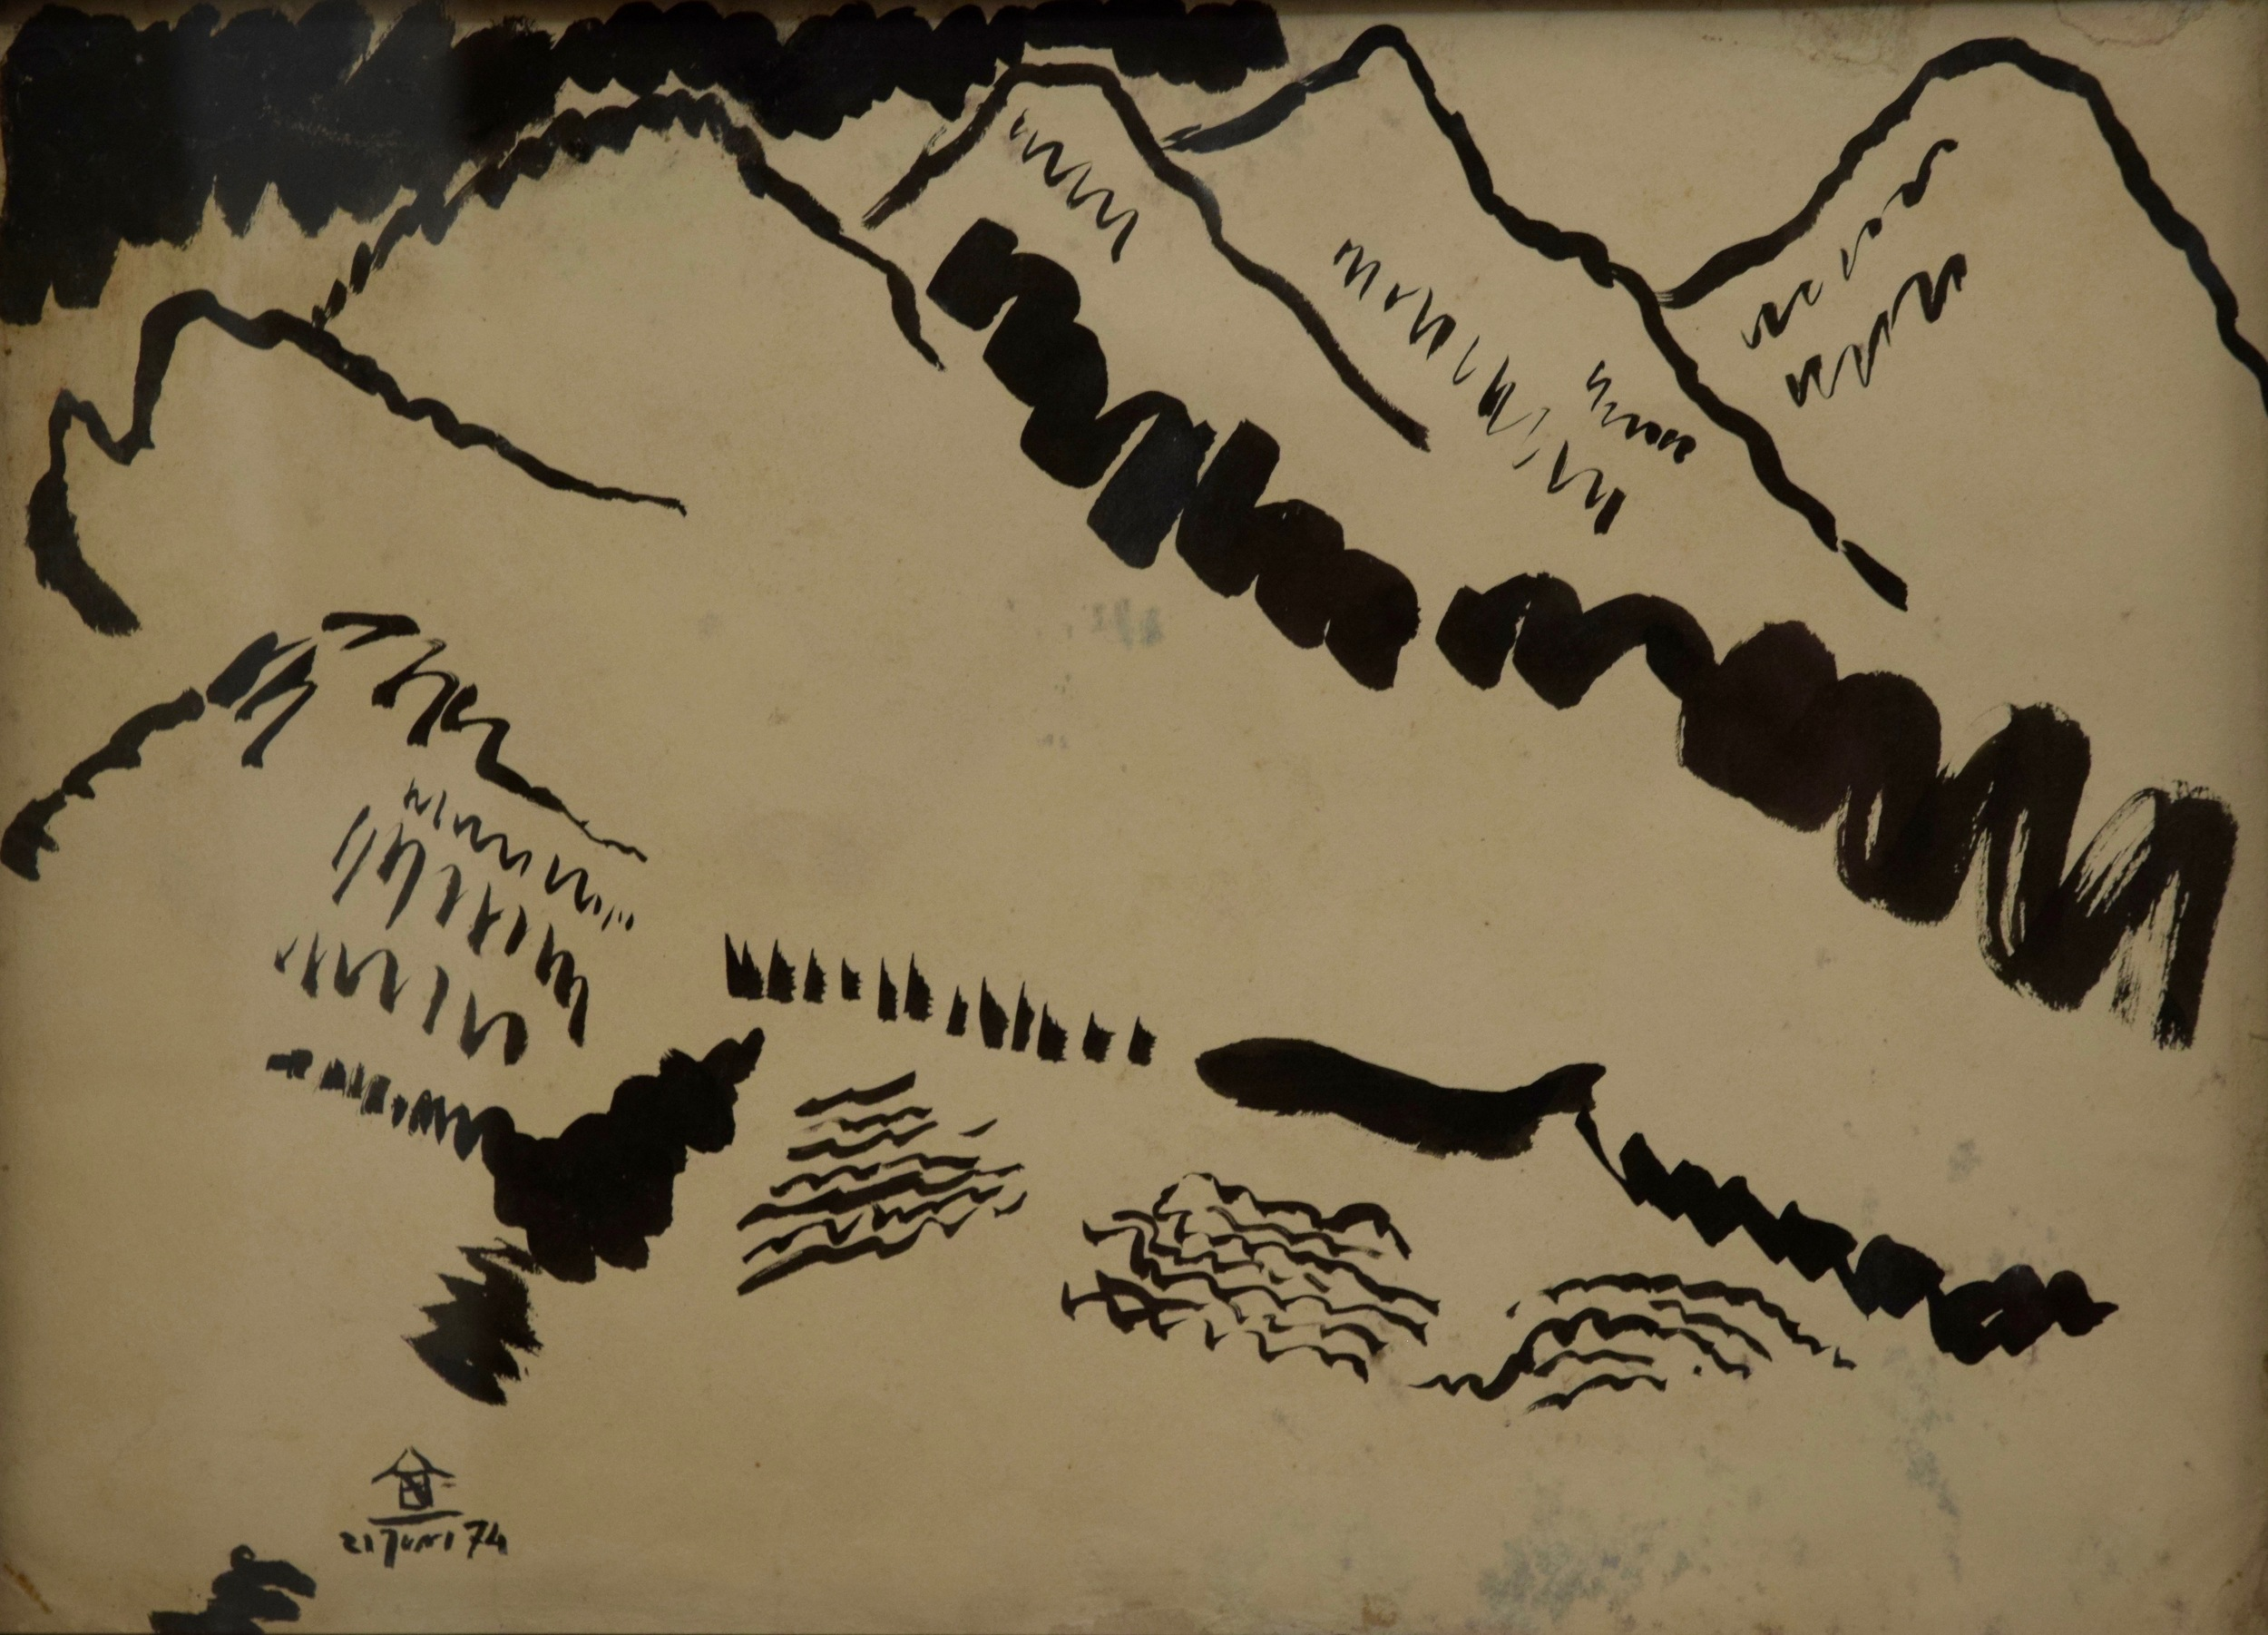 Artist: Nashar, Indonesia    Title: Sketsa Pemandangan Medium: ink on paper   Dimension: 26 cm x 36 cm Year: 1947